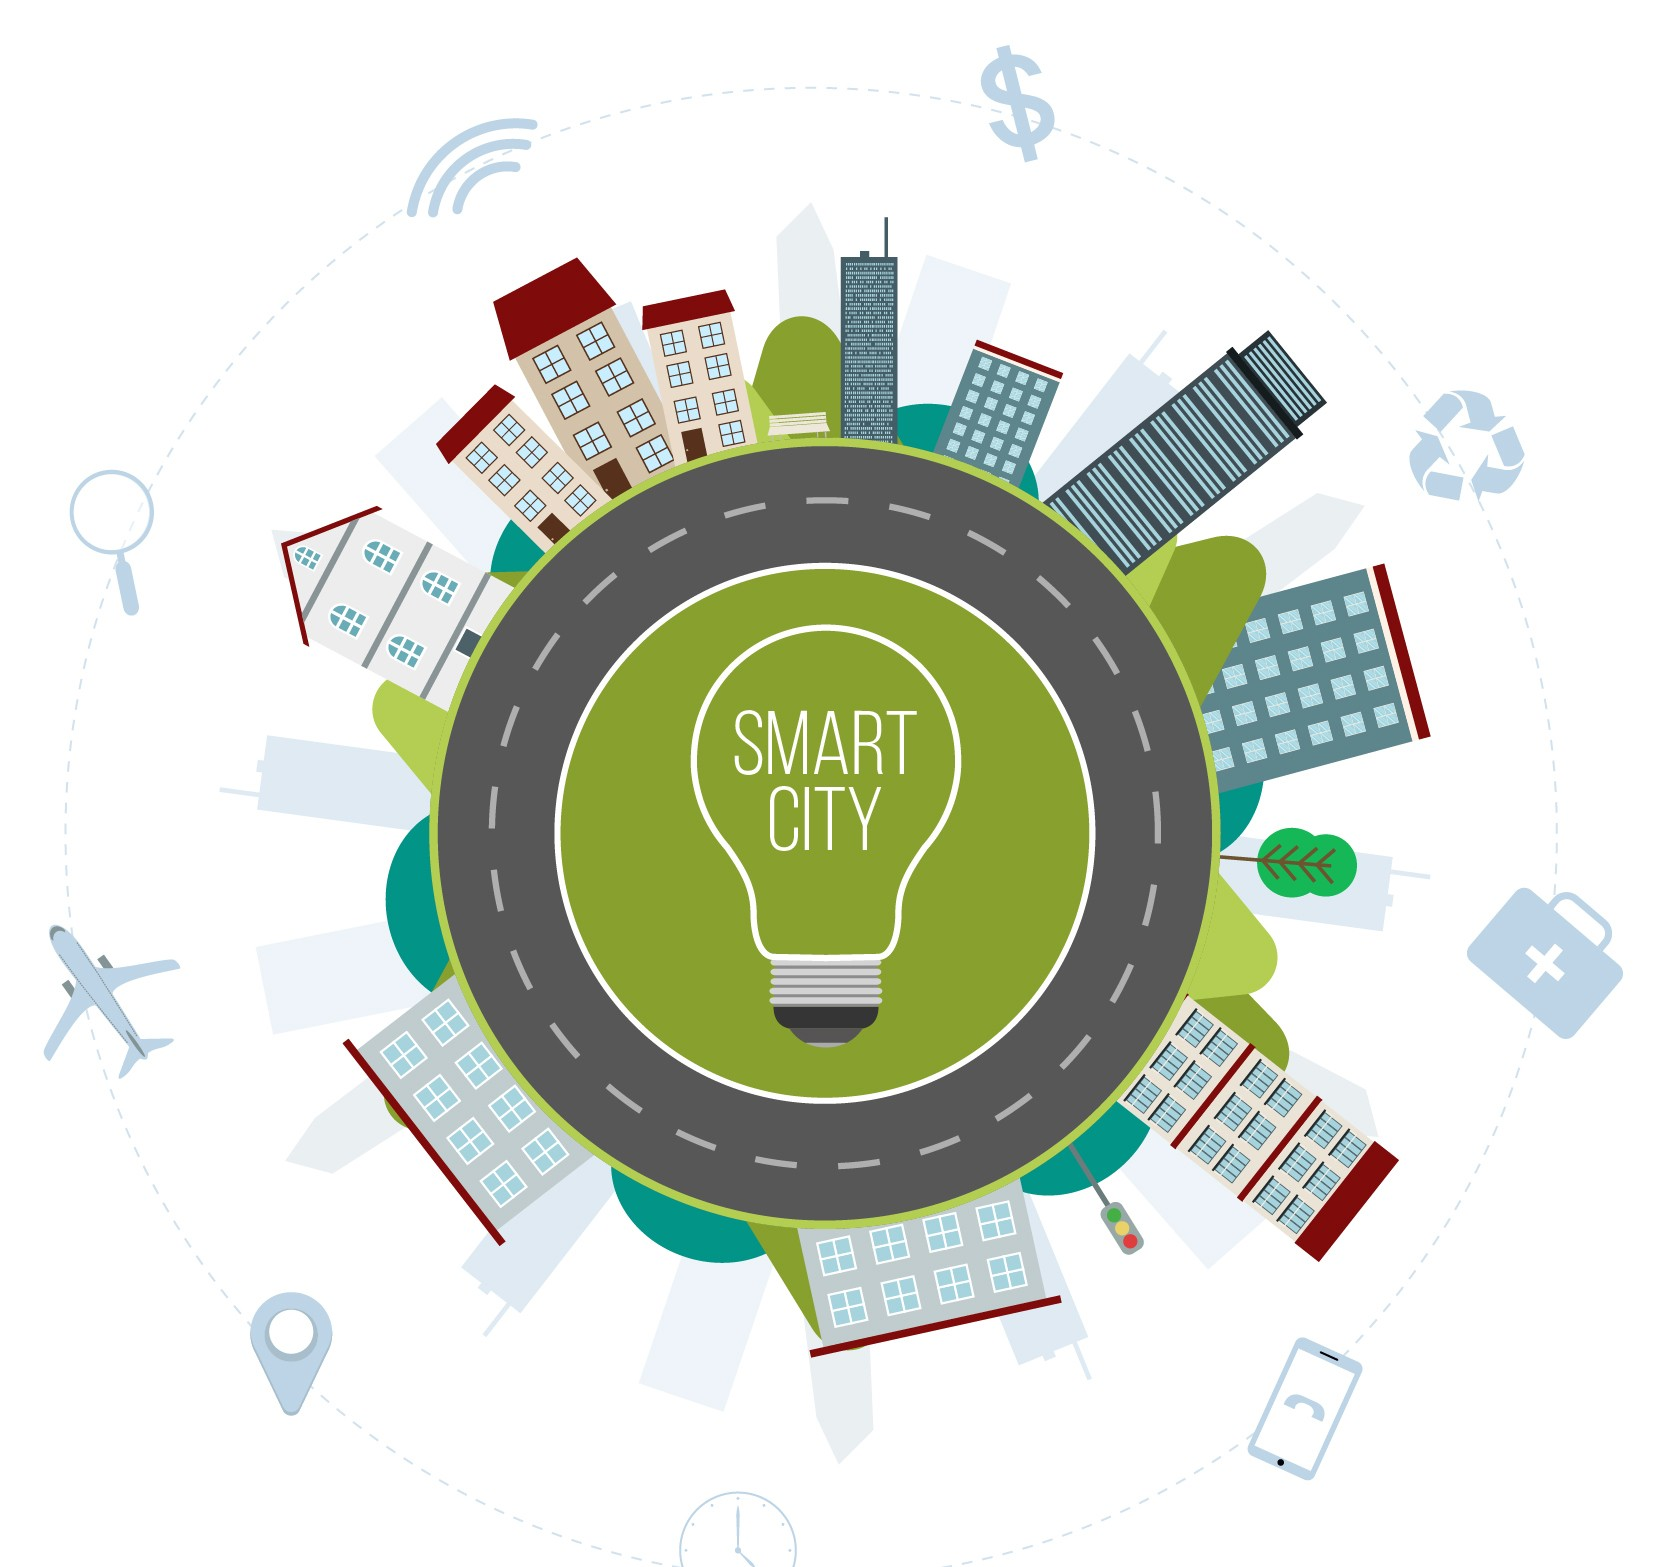 THE IMPACT OF SMART CITIES